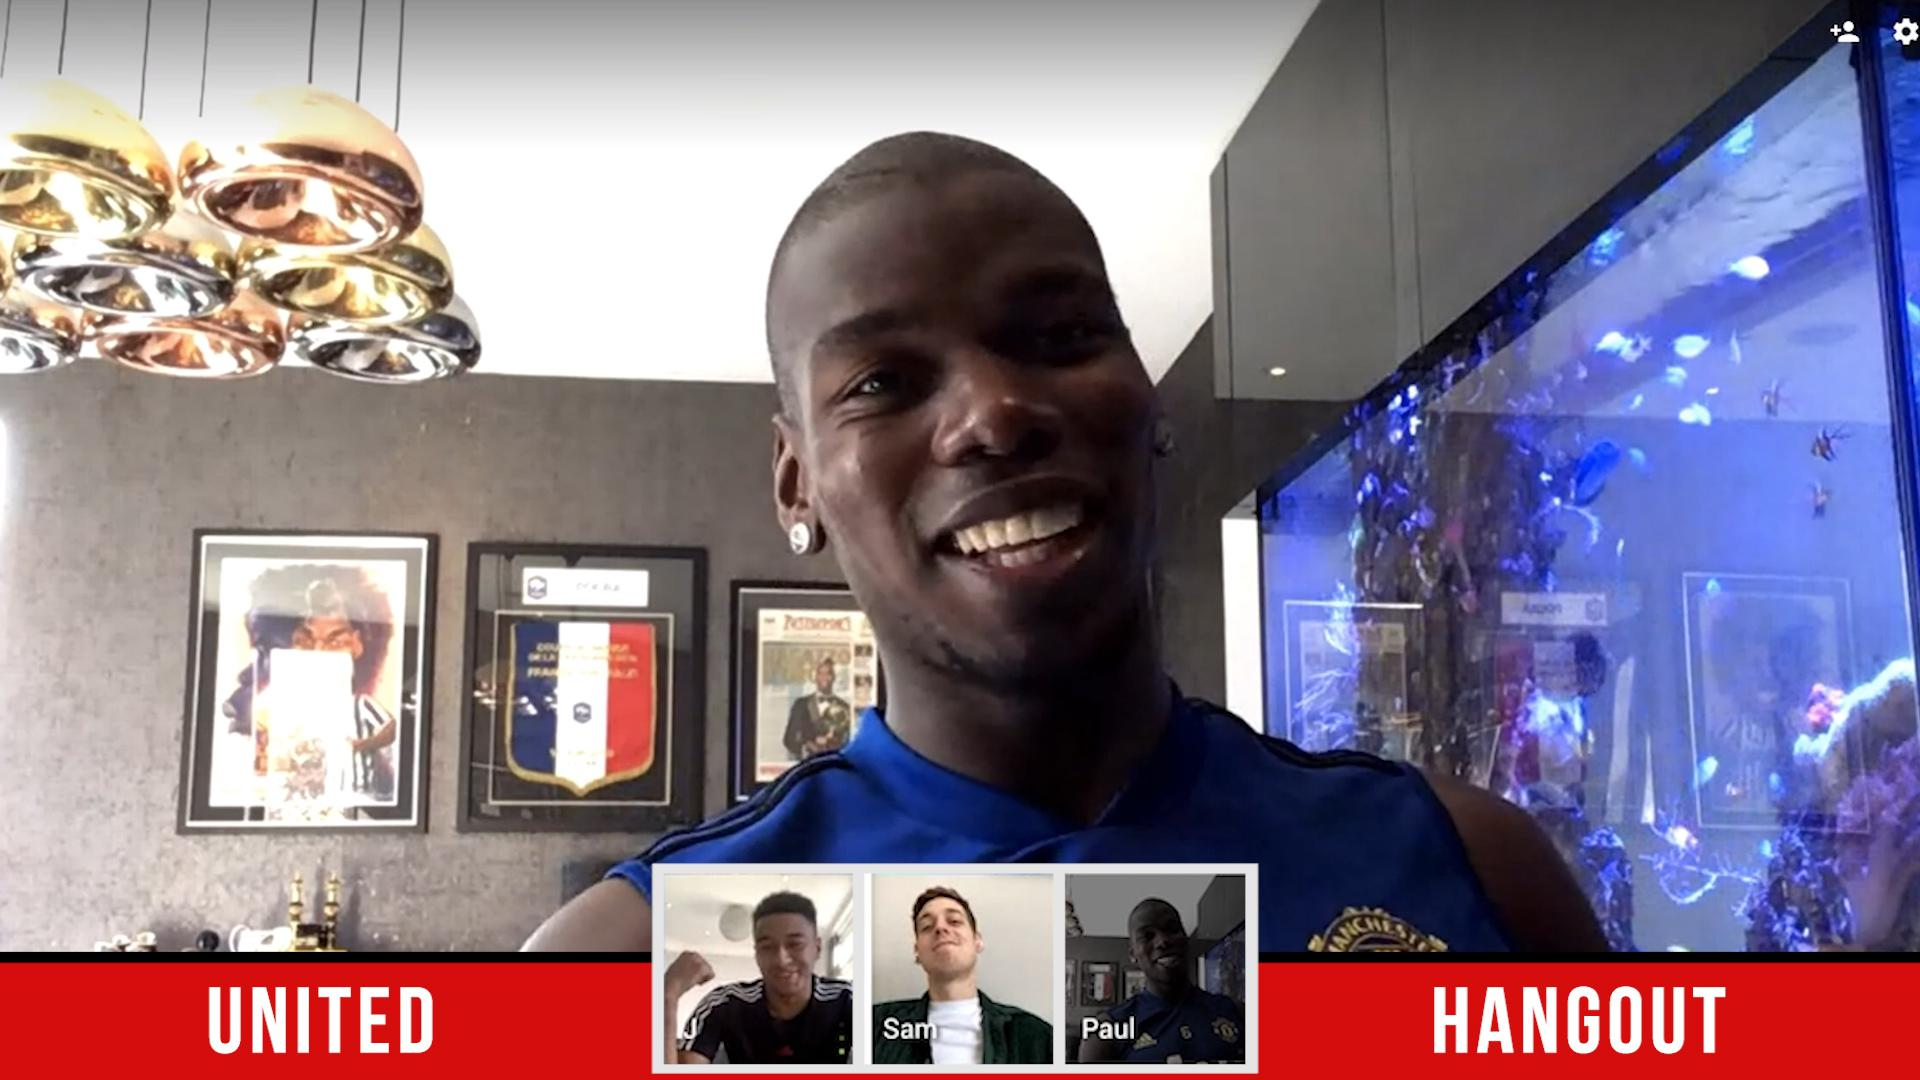 Paul Pogba en United Hangout.